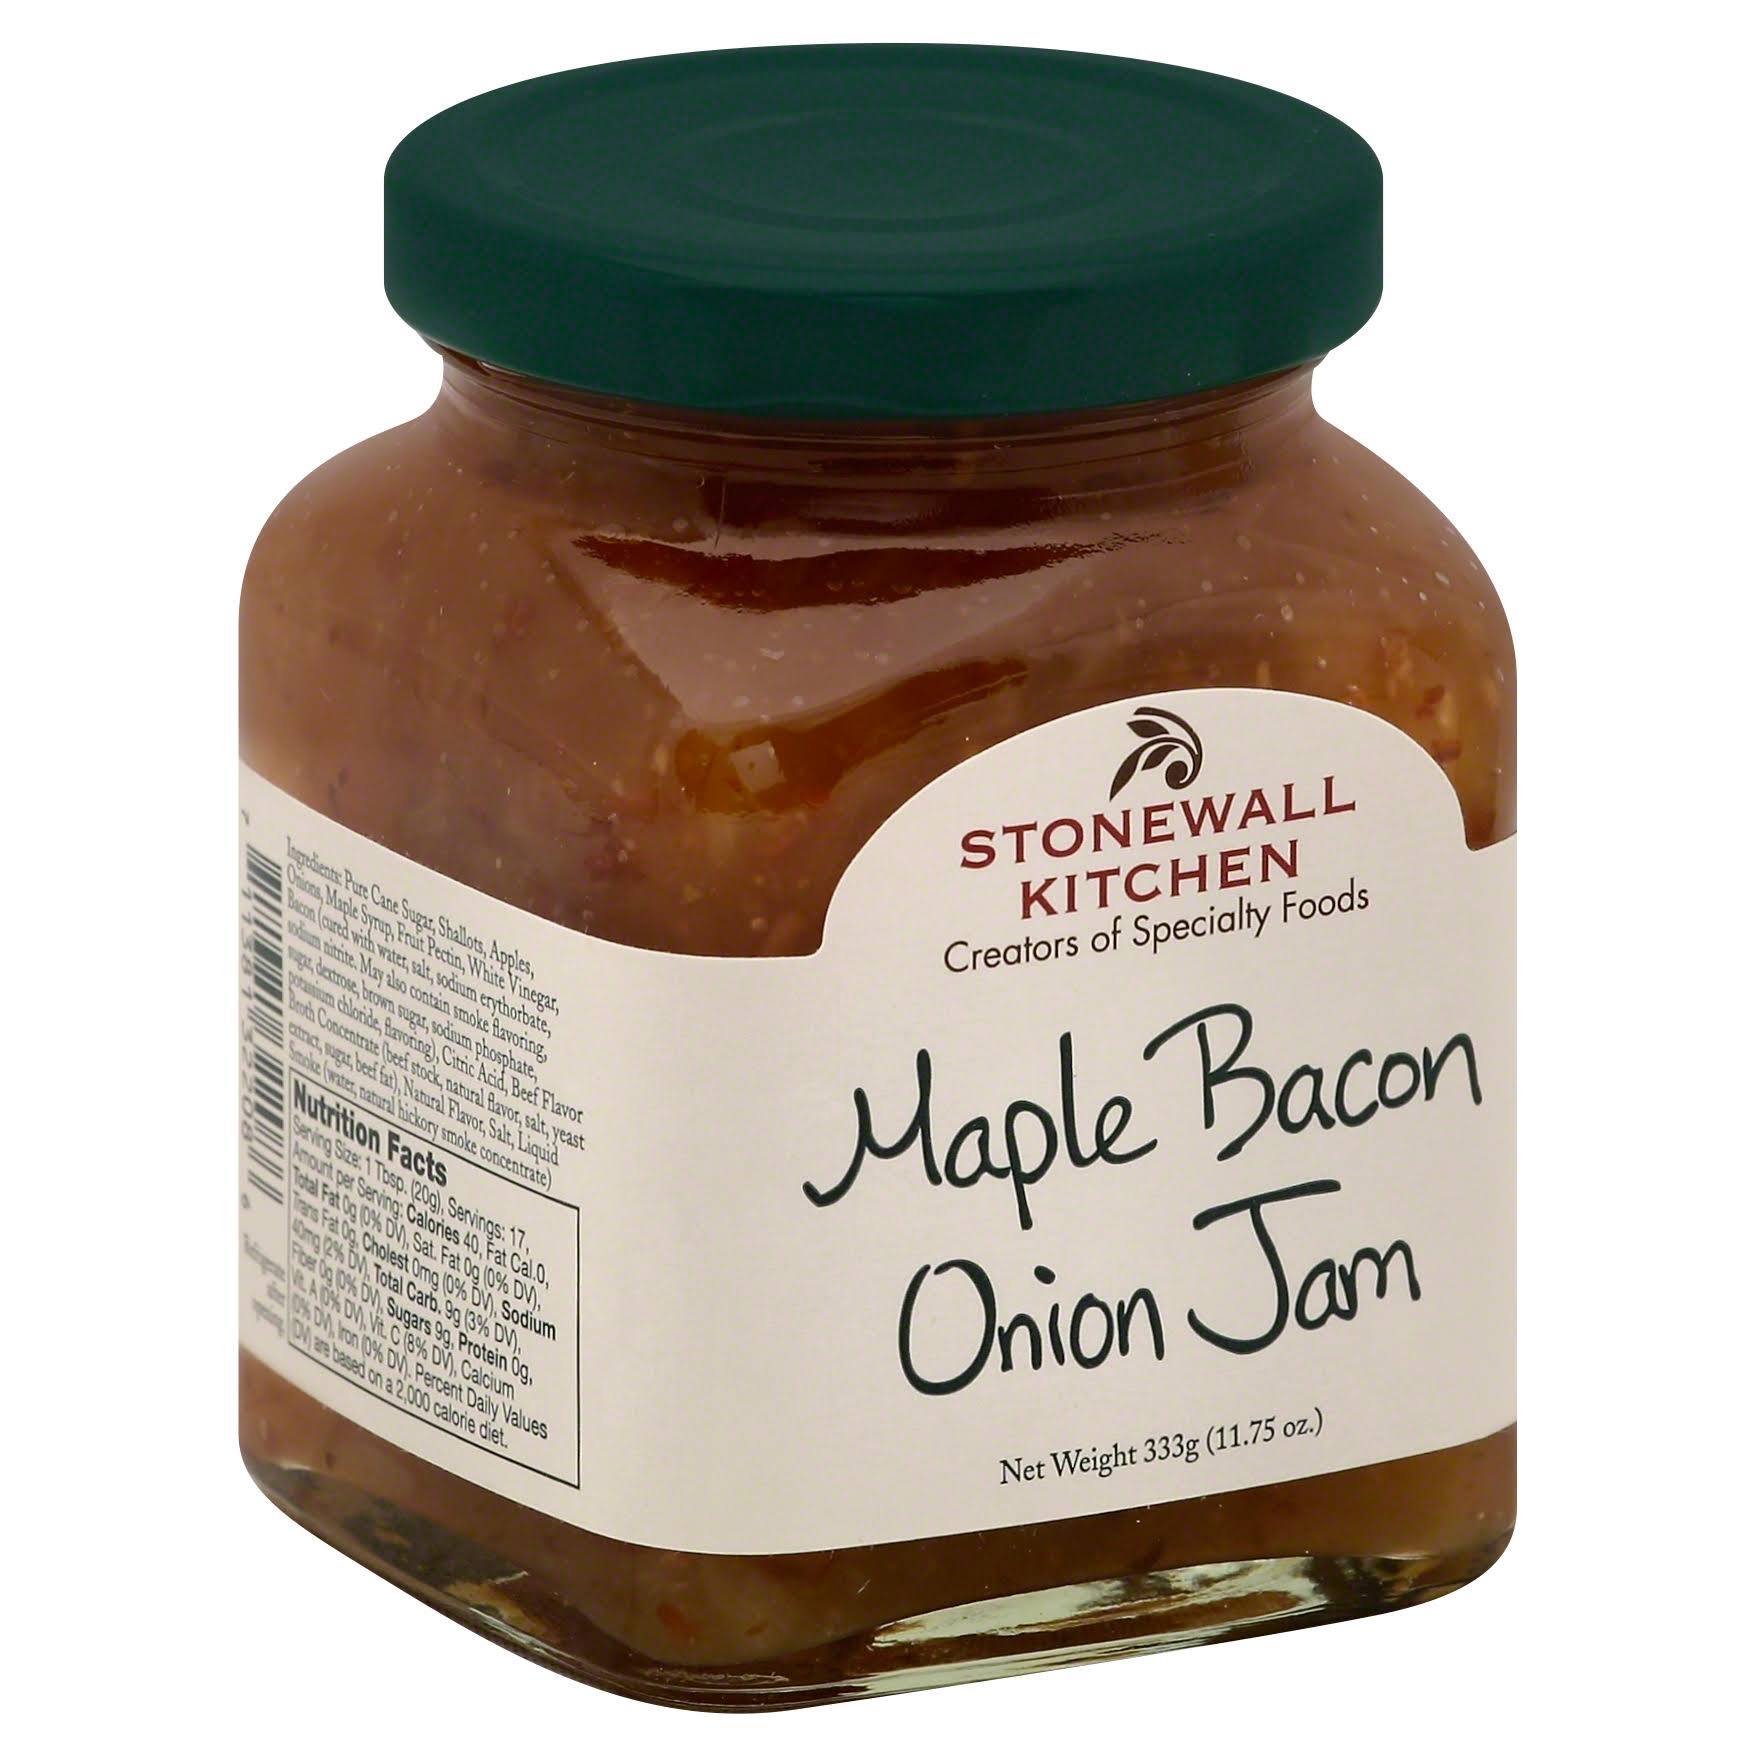 Stonewall Kitchen Maple Bacon Onion Jam - 11.75oz